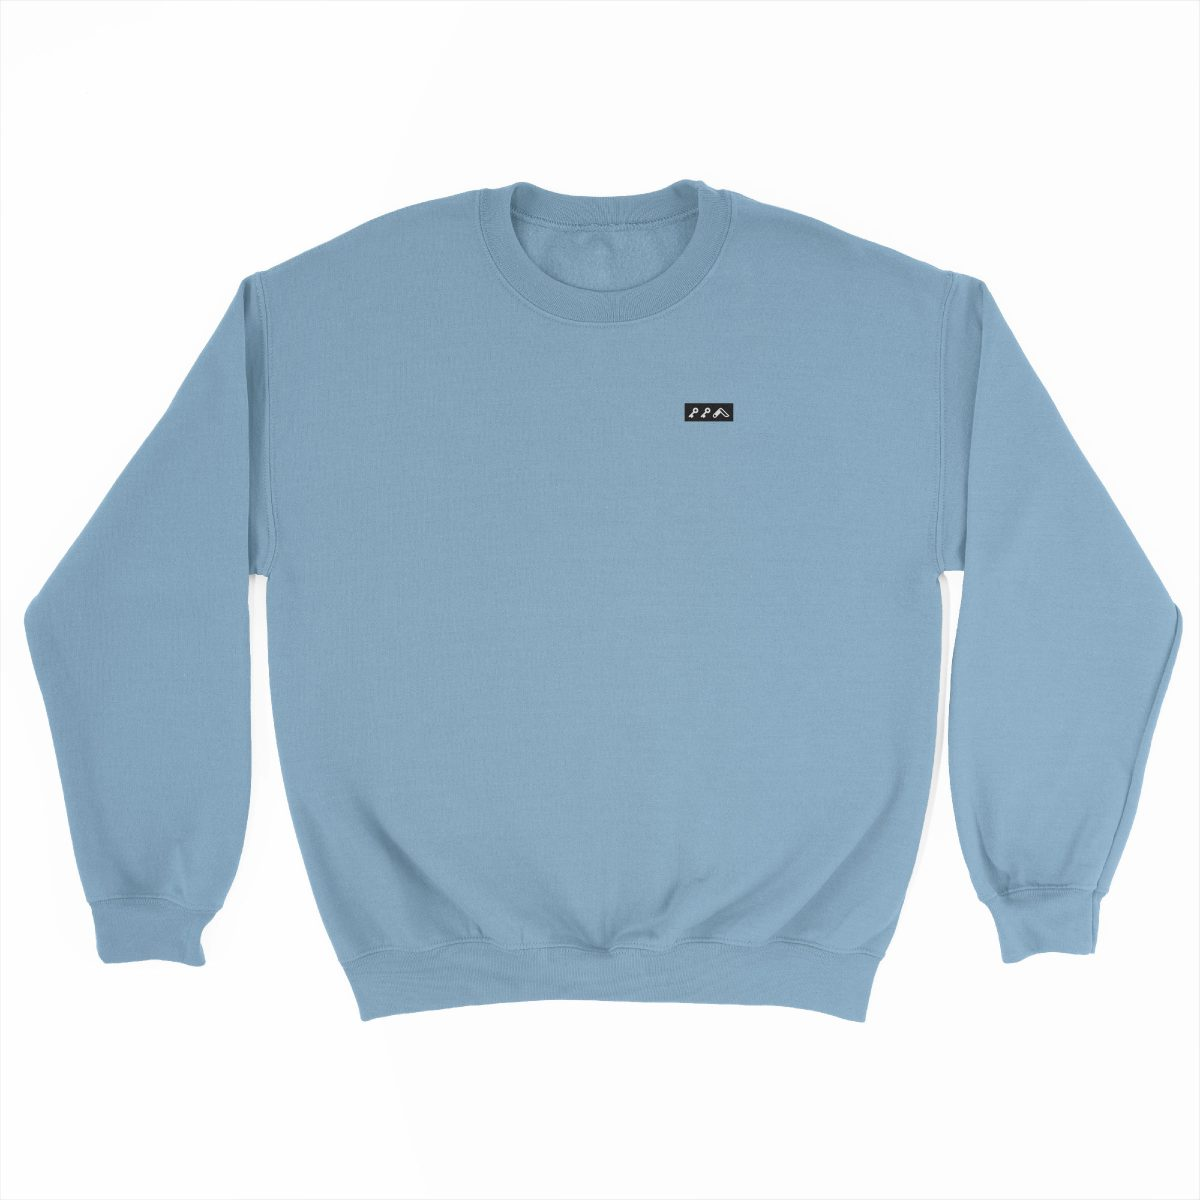 KIKICUTT black icon on a light blue really soft sweatshirt at kikicutt.com